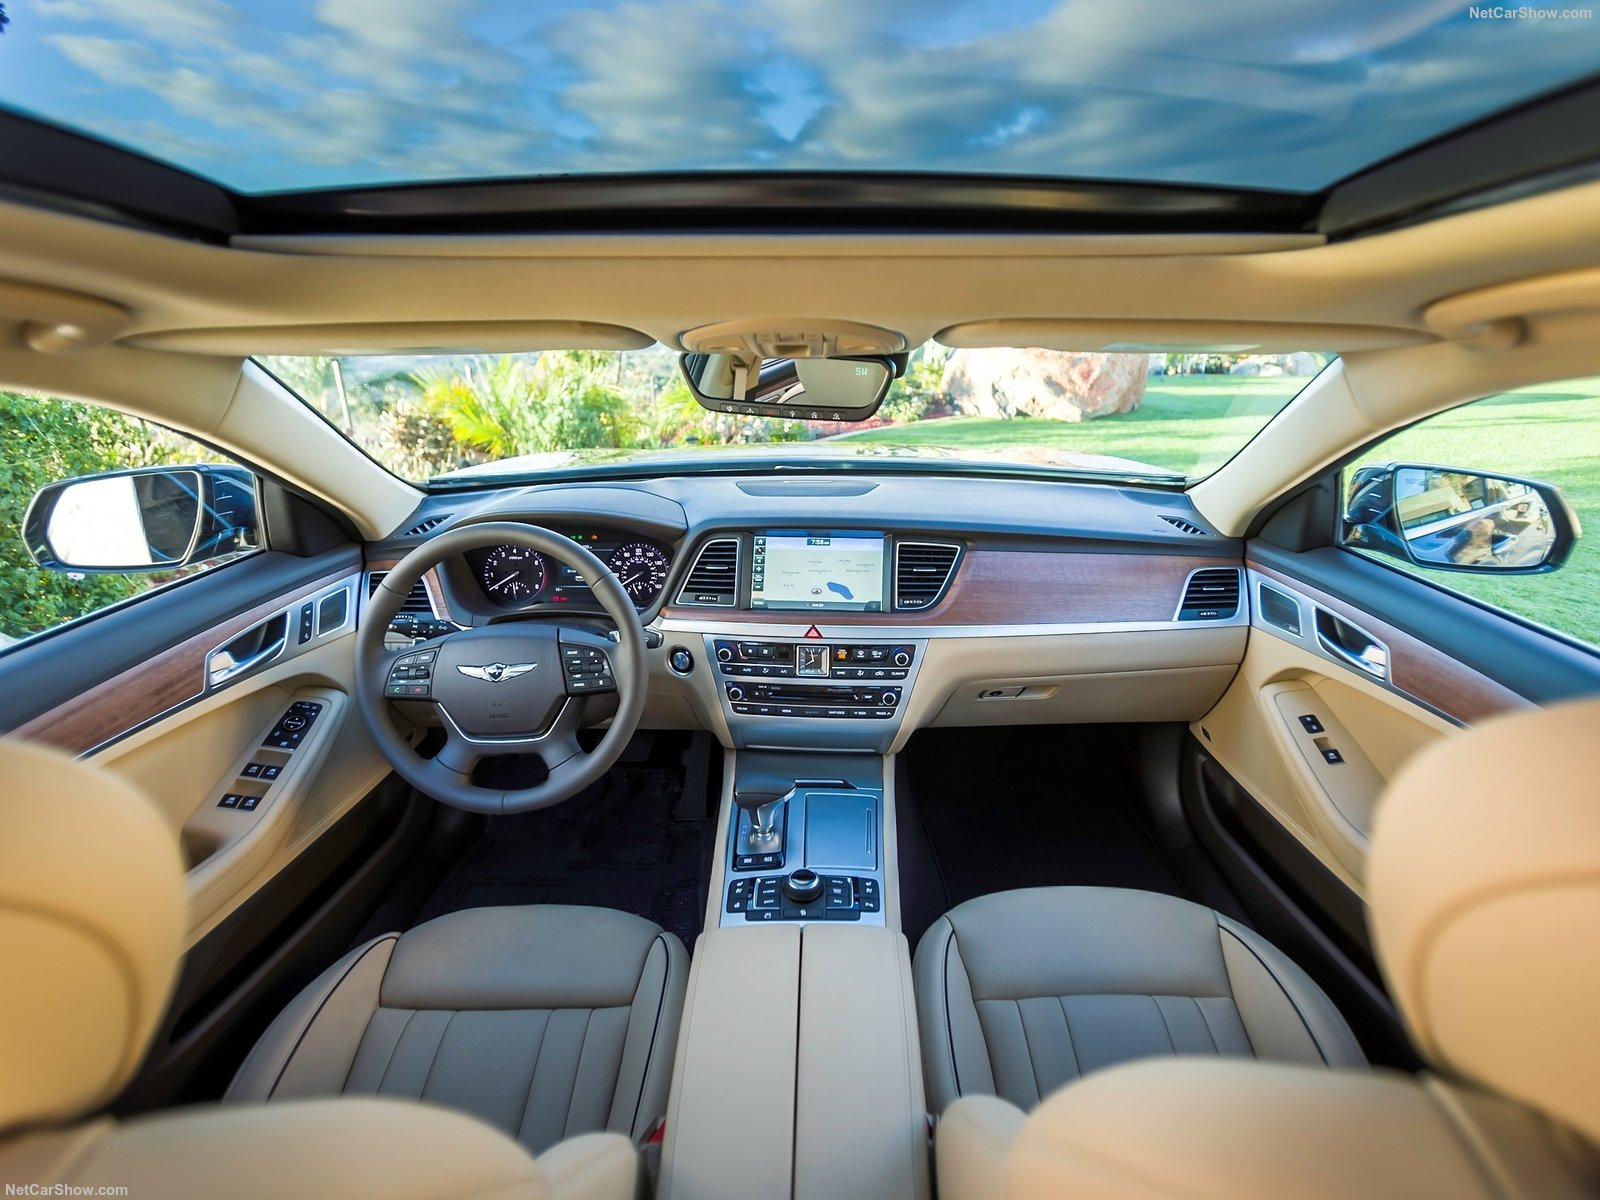 Hyundai Genesis G80 photo 183370